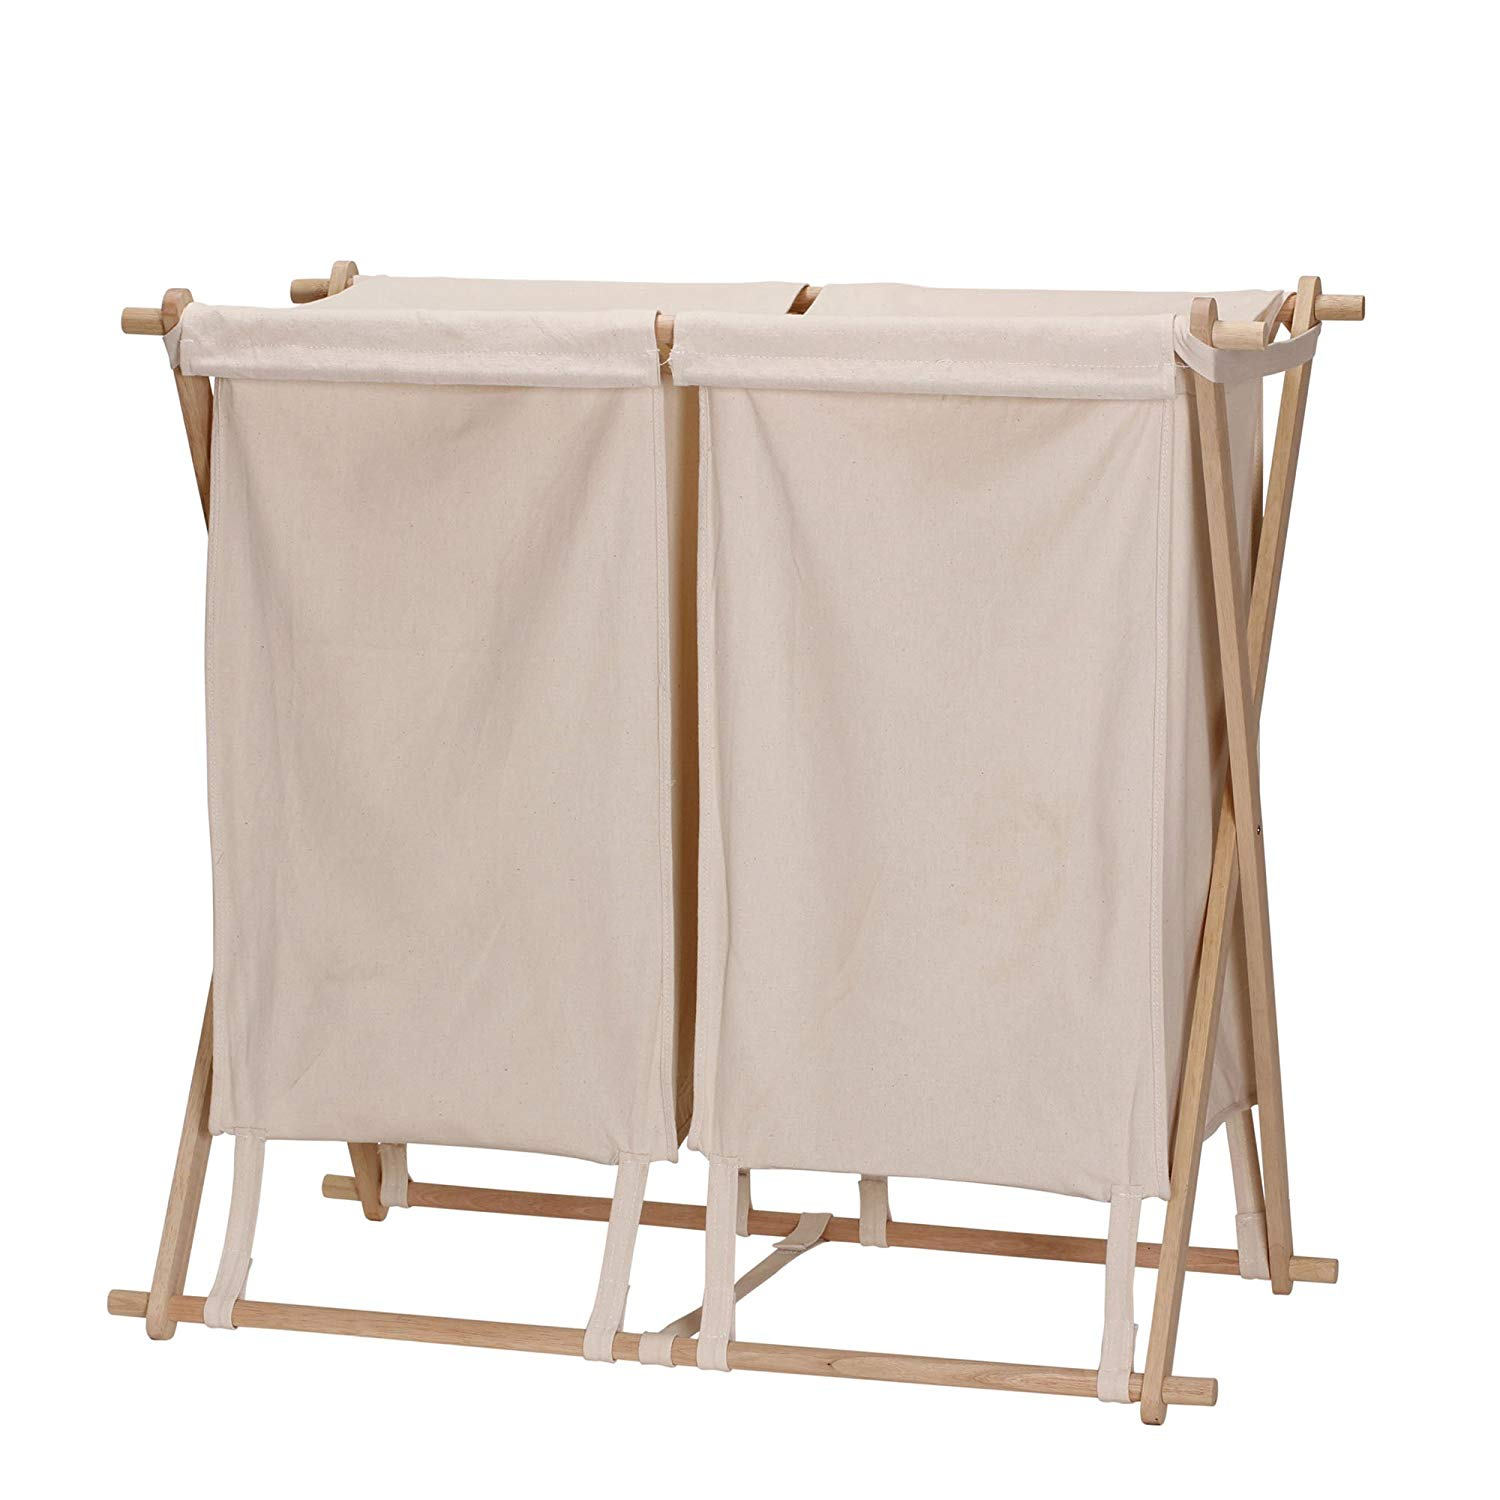 Collapsible Frame Laundry Hamper - $29.99